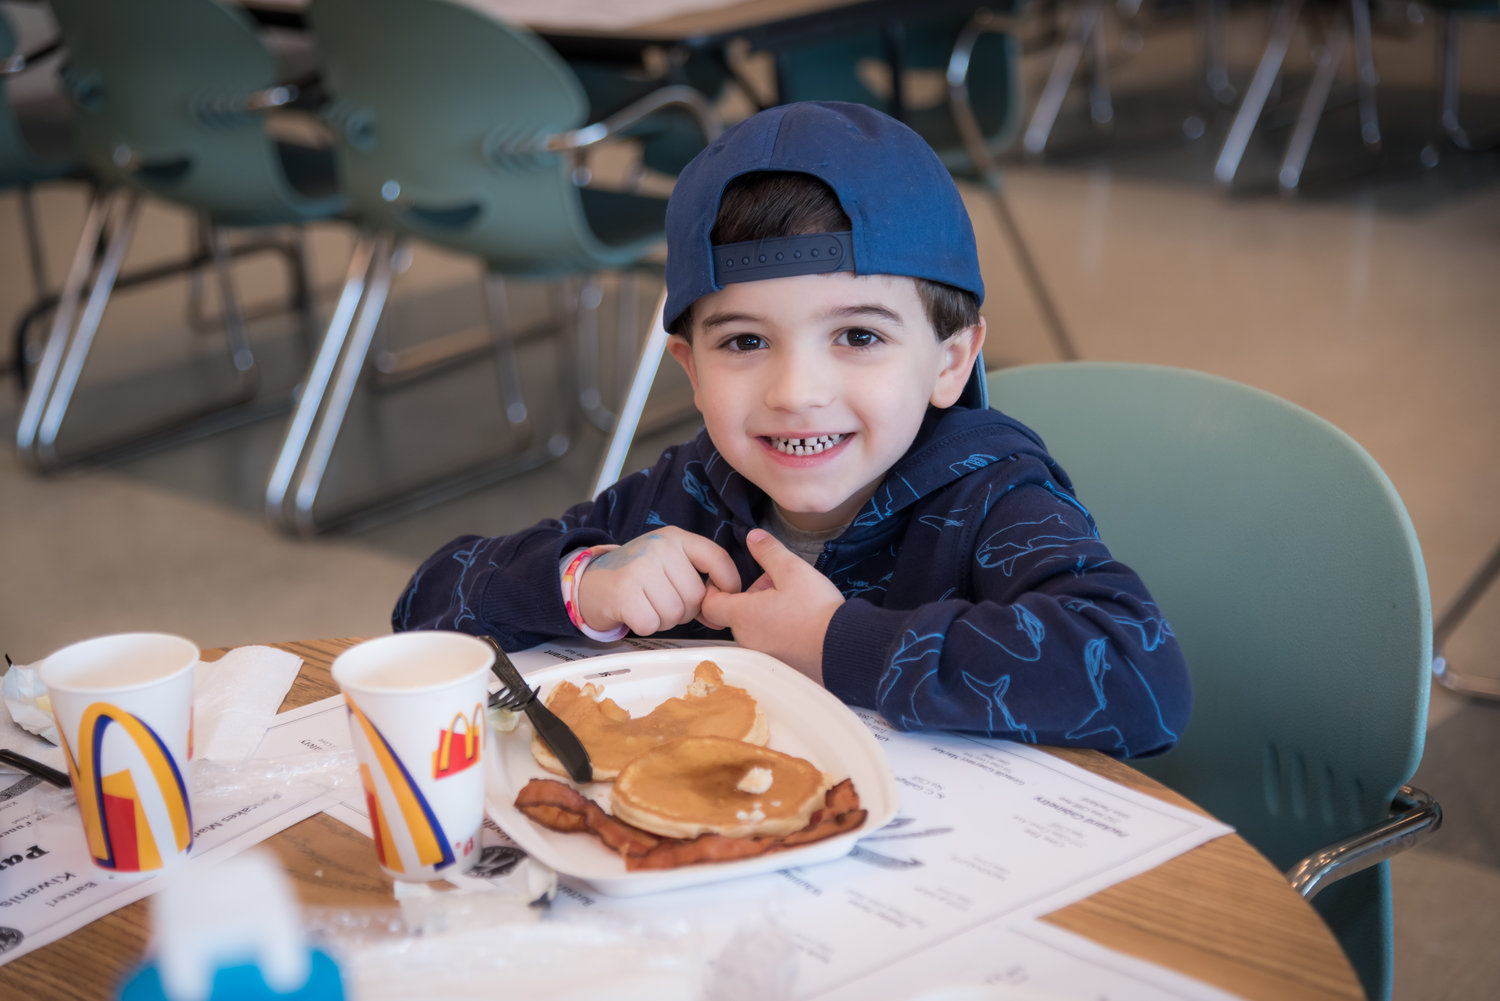 JR Russo, 4, was delighted to spend his Sunday morning eating piping-hot pancakes.